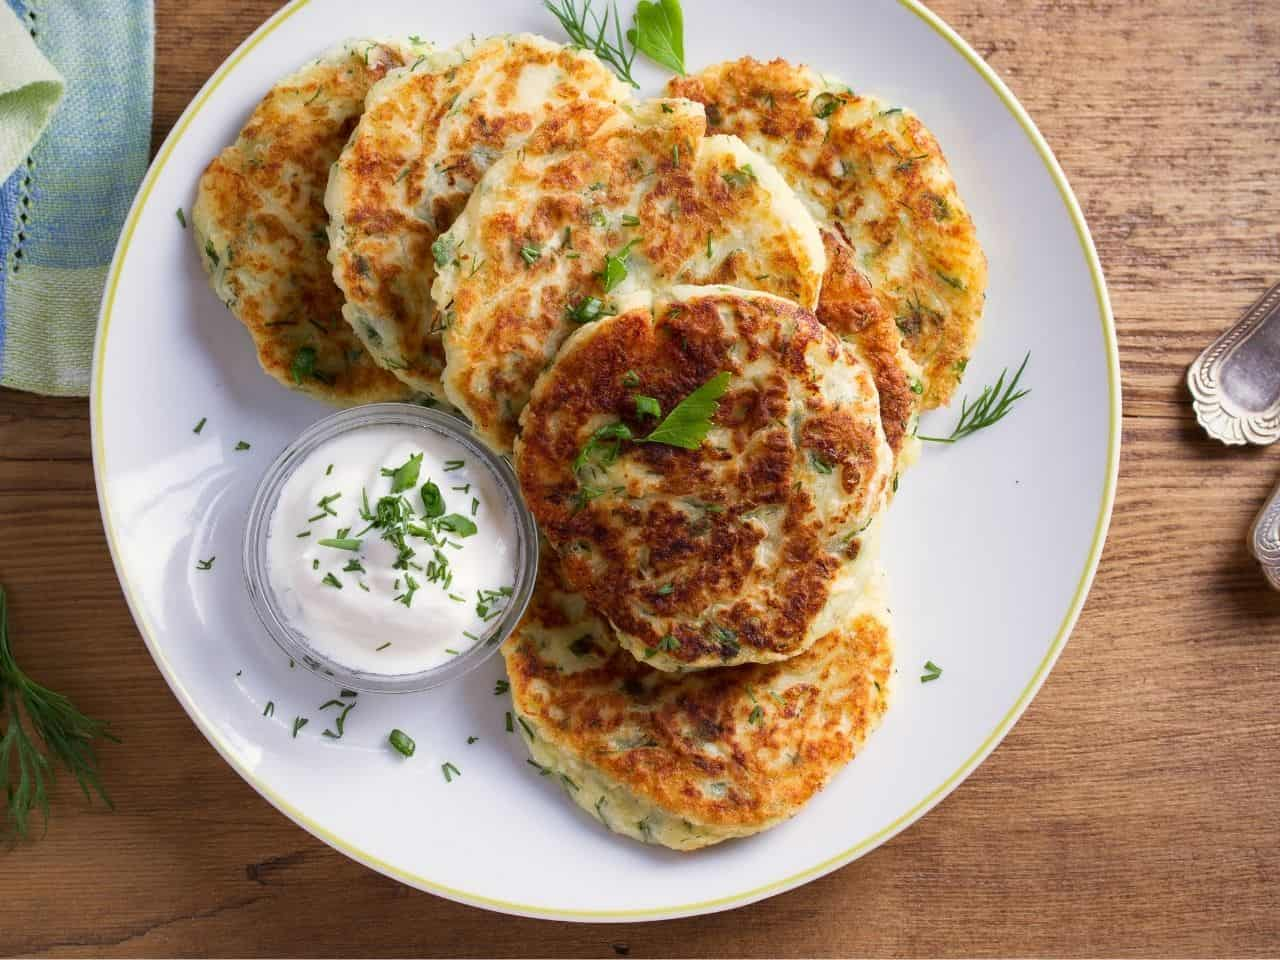 Potato Pancakes on a white plate with uellow trim on a wooden table